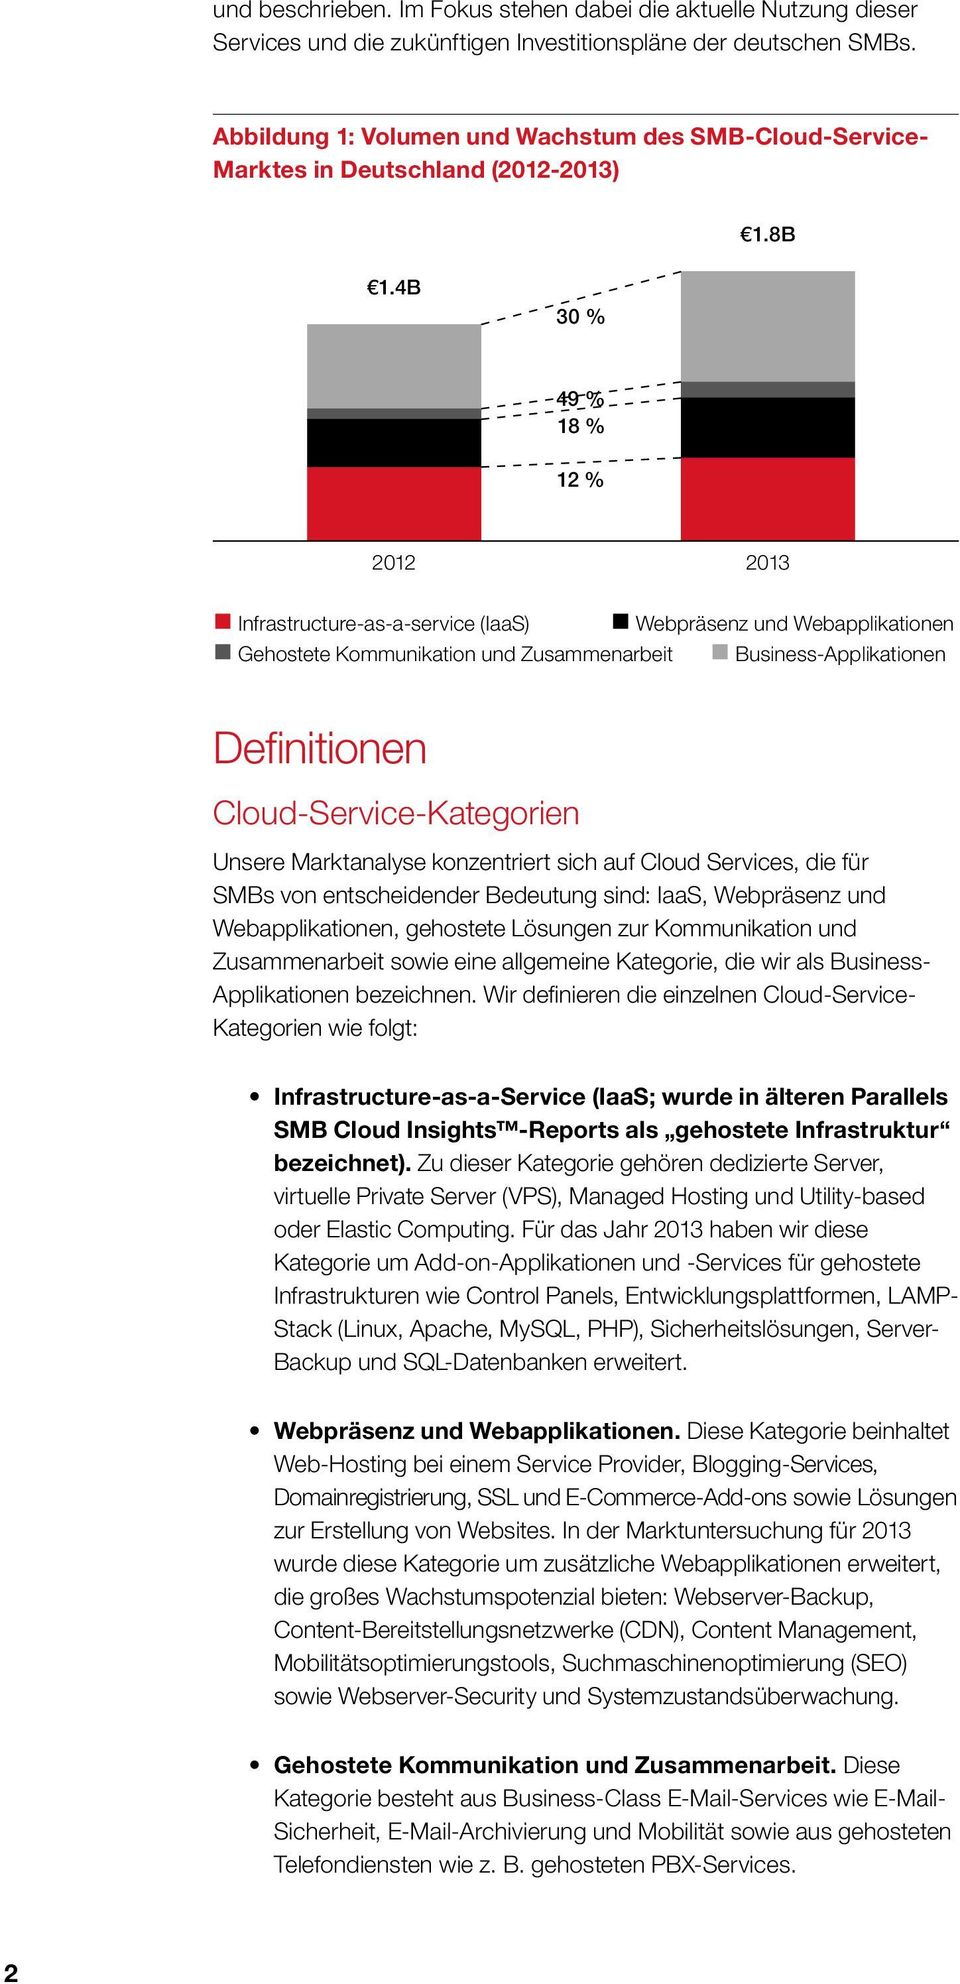 4B 30 % 49 % 18 % 12 % 2012 2013 Infrastructure-as-a-service (IaaS) Webpräsenz und Webapplikationen Gehostete Kommunikation und Zusammenarbeit Business-Applikationen Definitionen